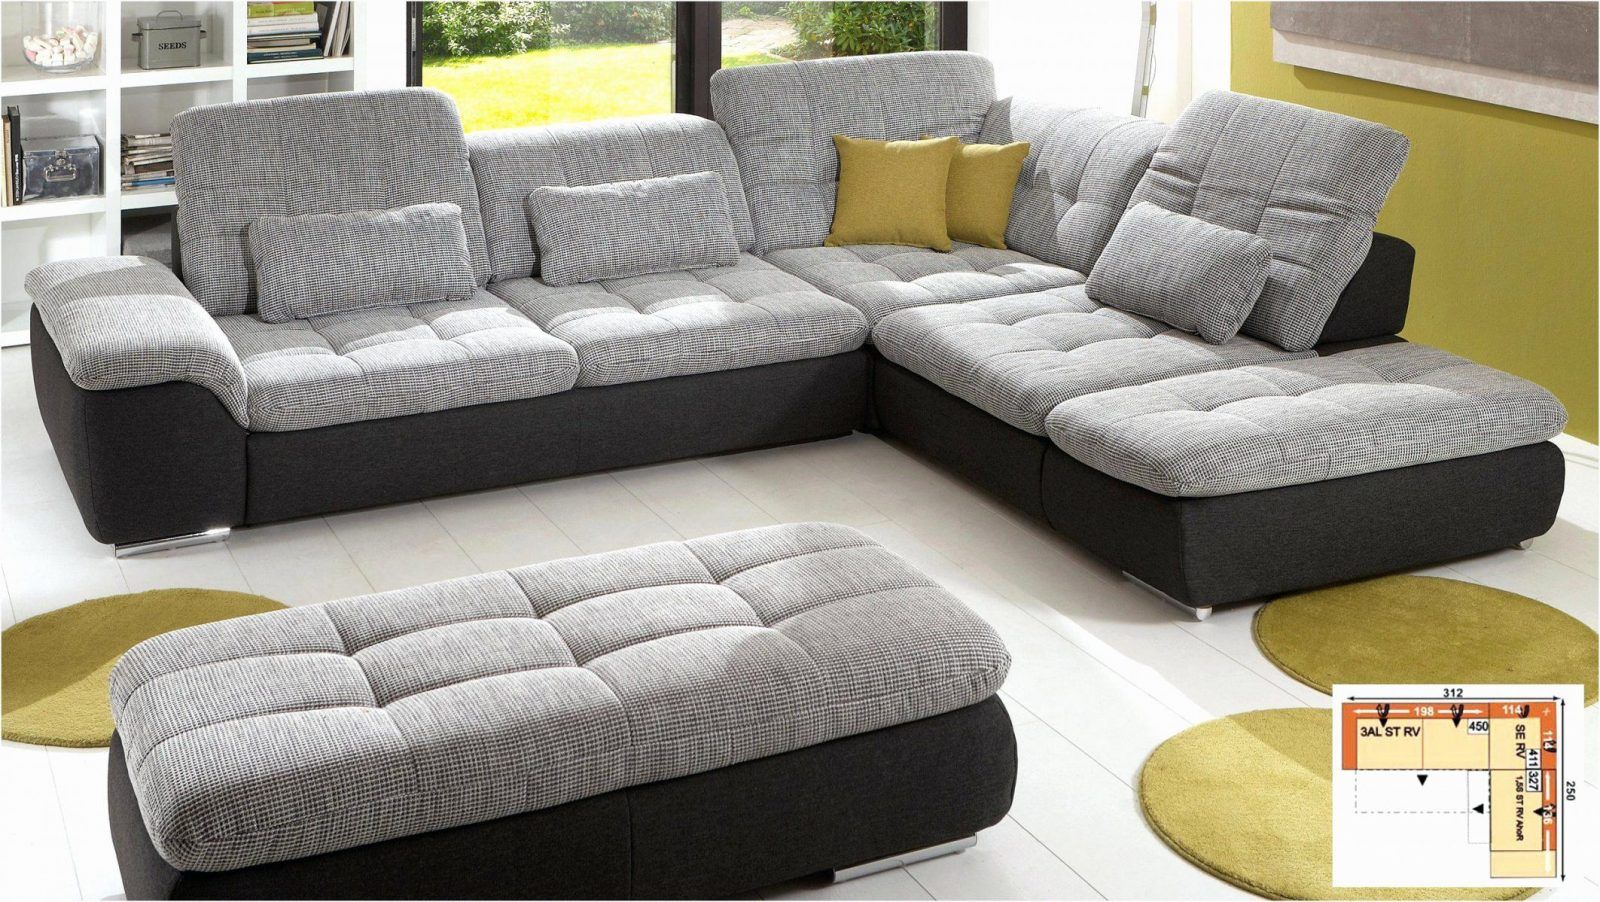 wohnlandschaft u form mit schlaffunktion frisch big sofa. Black Bedroom Furniture Sets. Home Design Ideas